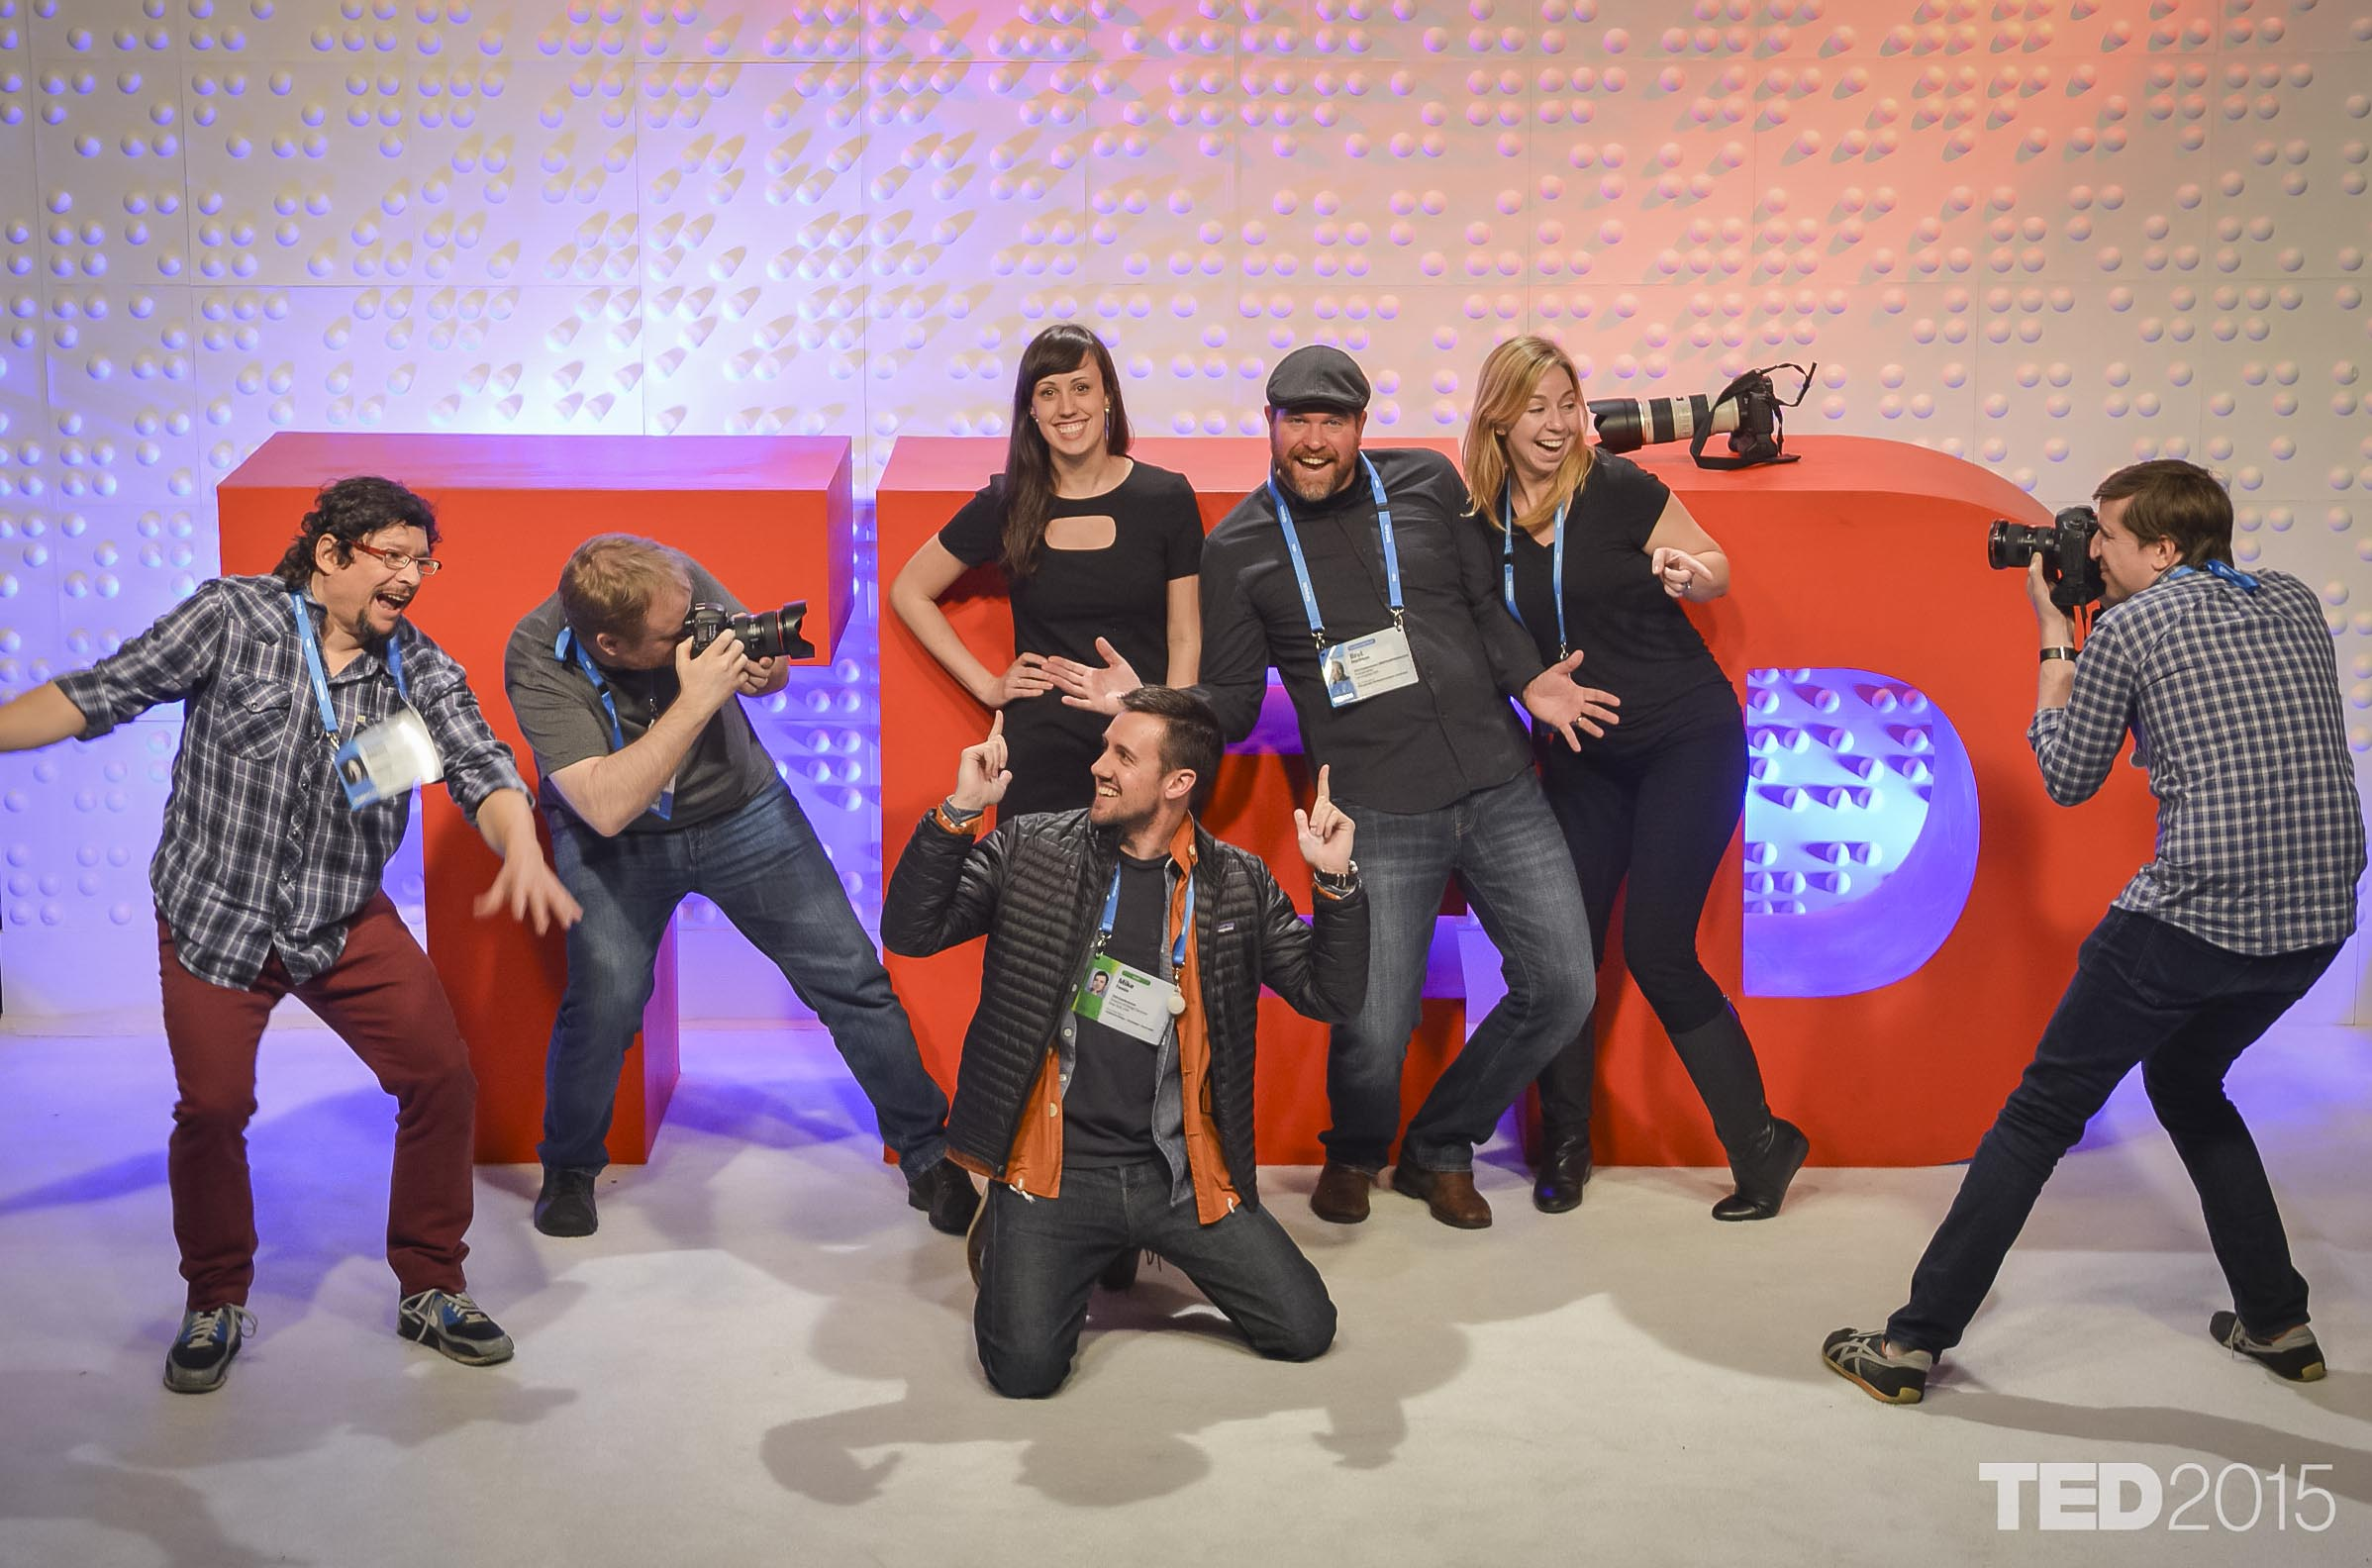 The TED2015 photo team -- Jason Redmond, James Duncan Davidson, Emily Pidgeon, Bret Hartman, Stacie McChesney, Ryan Lash -- surround TED's design director, Mike Femia.